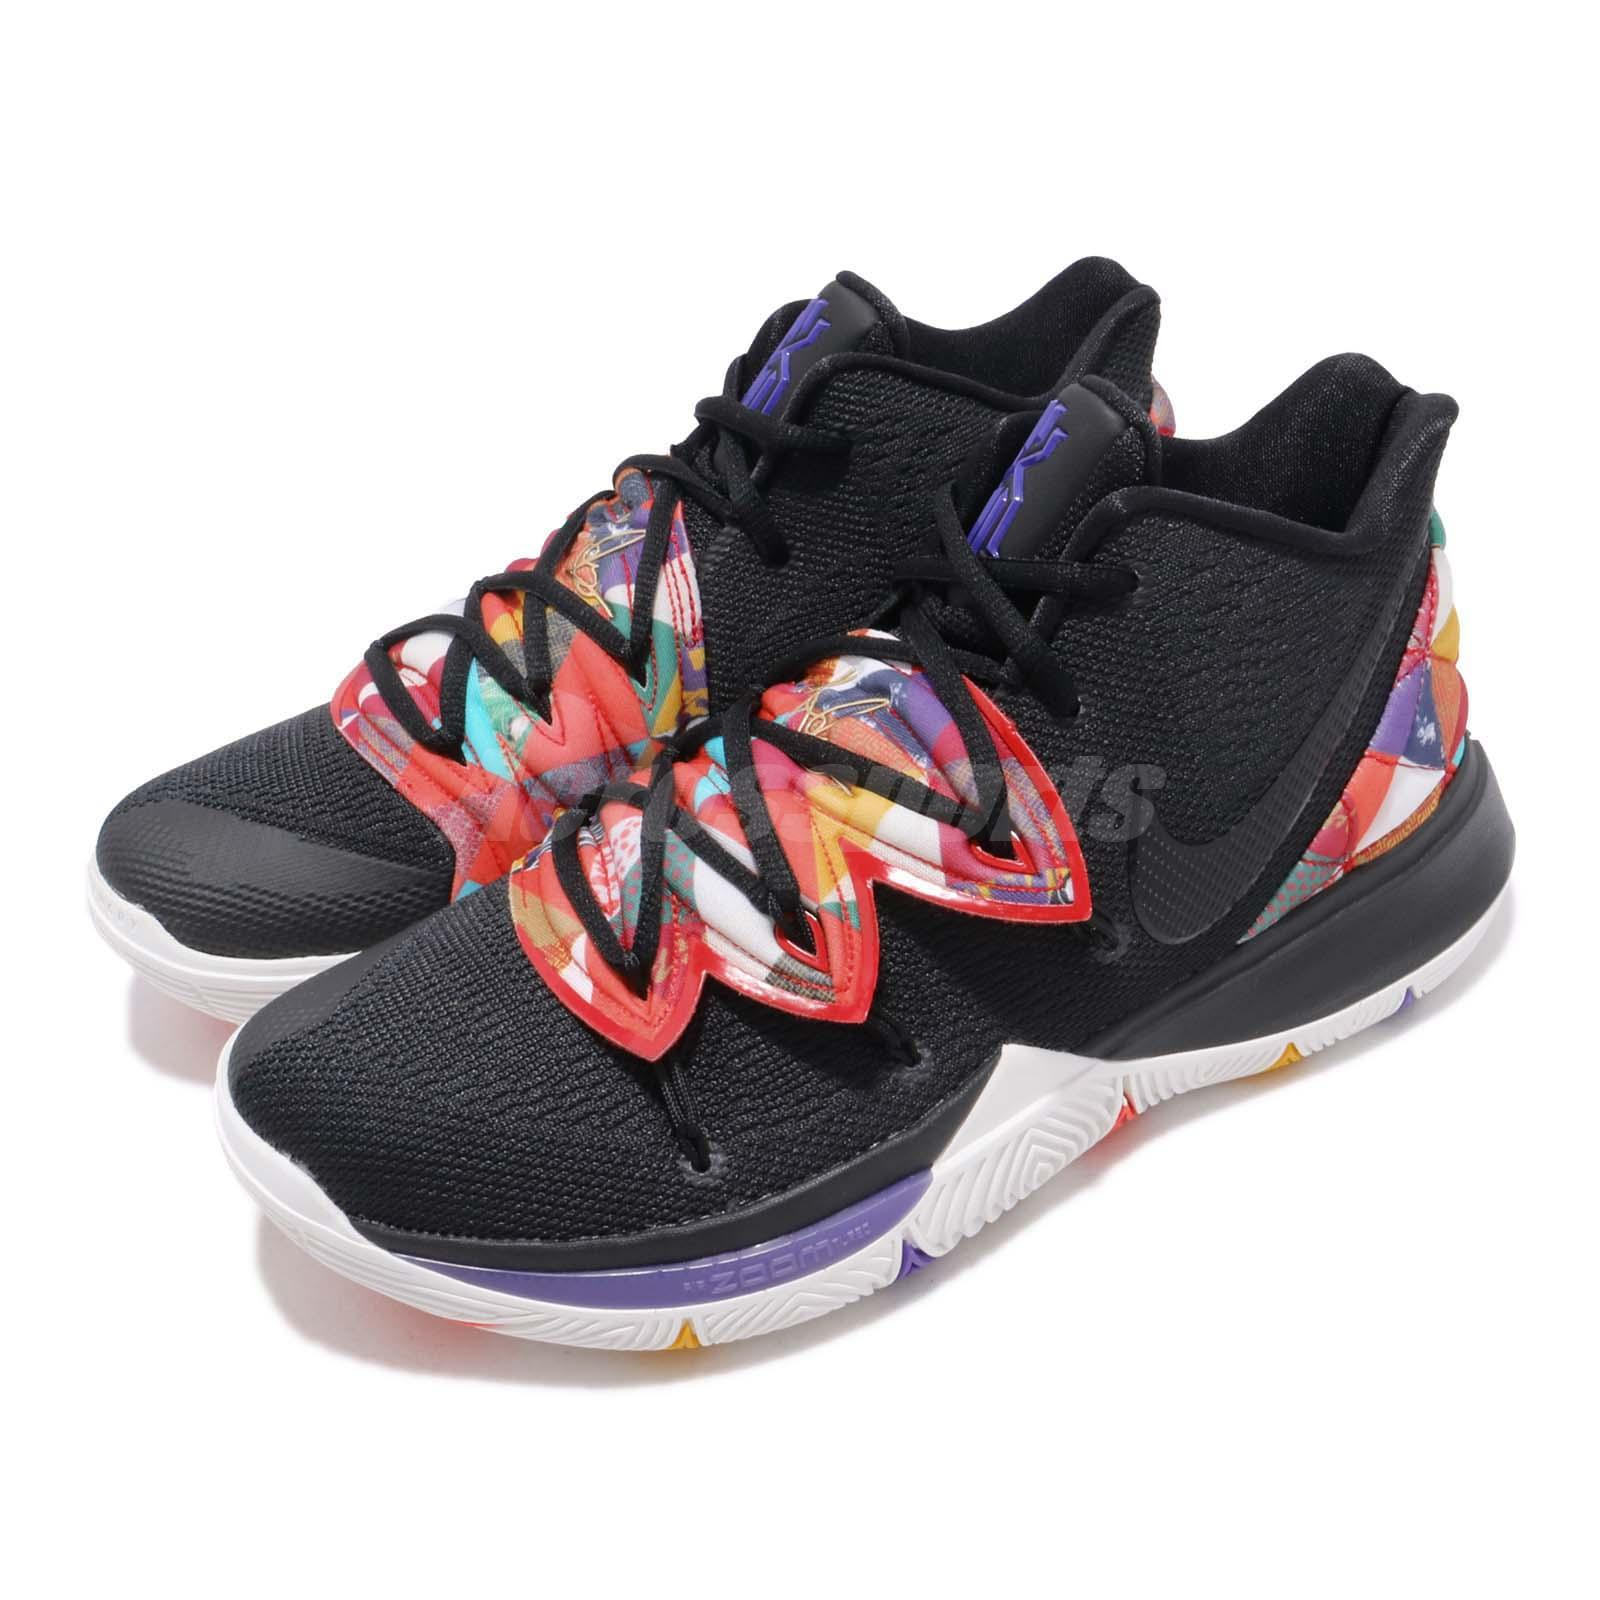 best service 4425f ed34f Details about Nike Kyrie 5 EP V Irving CNY Chinese New Year Men Shoes  Sneakers AO2919-010